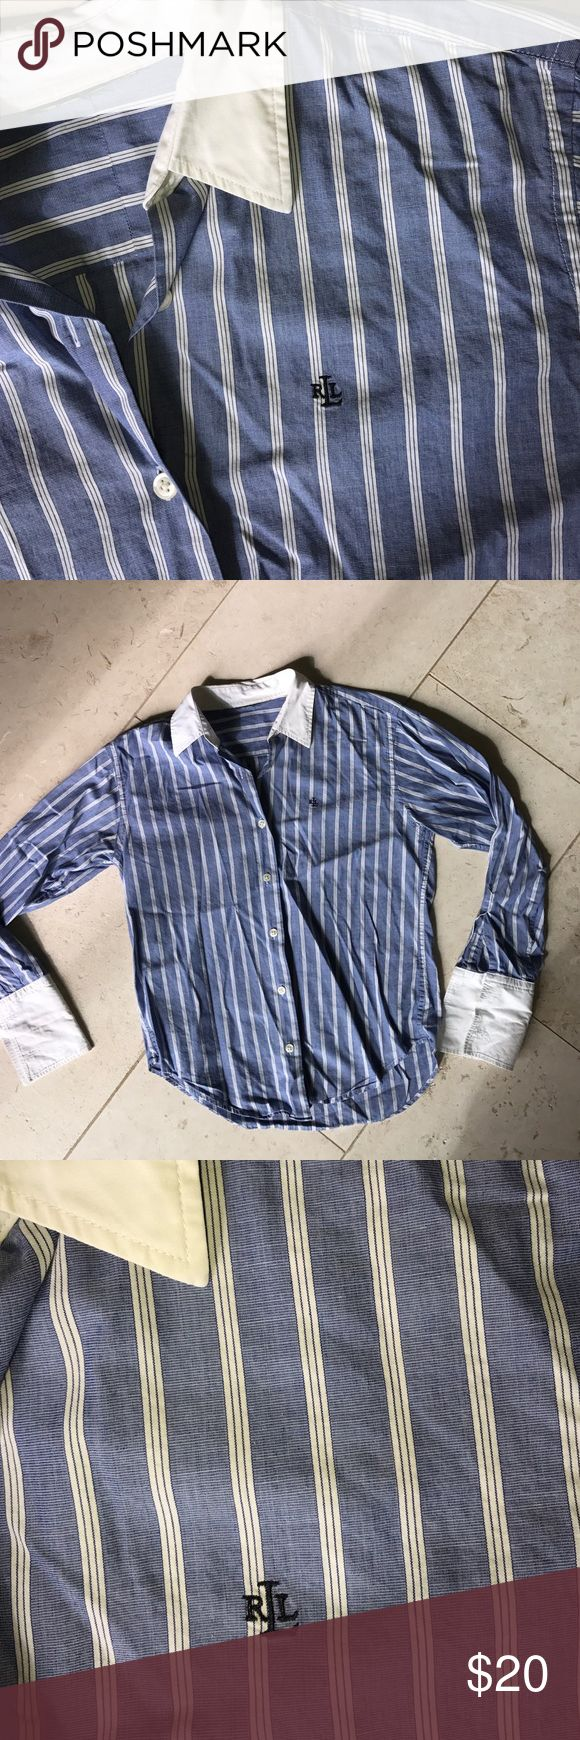 "Lauren Ralph Lauren cotton button down Love but have too many. No more tags. But recall as cotton blend. Chest abt 38"". Length abt 19""-22"". Shirt tail hem. So easy with a pencil skirt or dress pants! Lauren Ralph Lauren Tops"